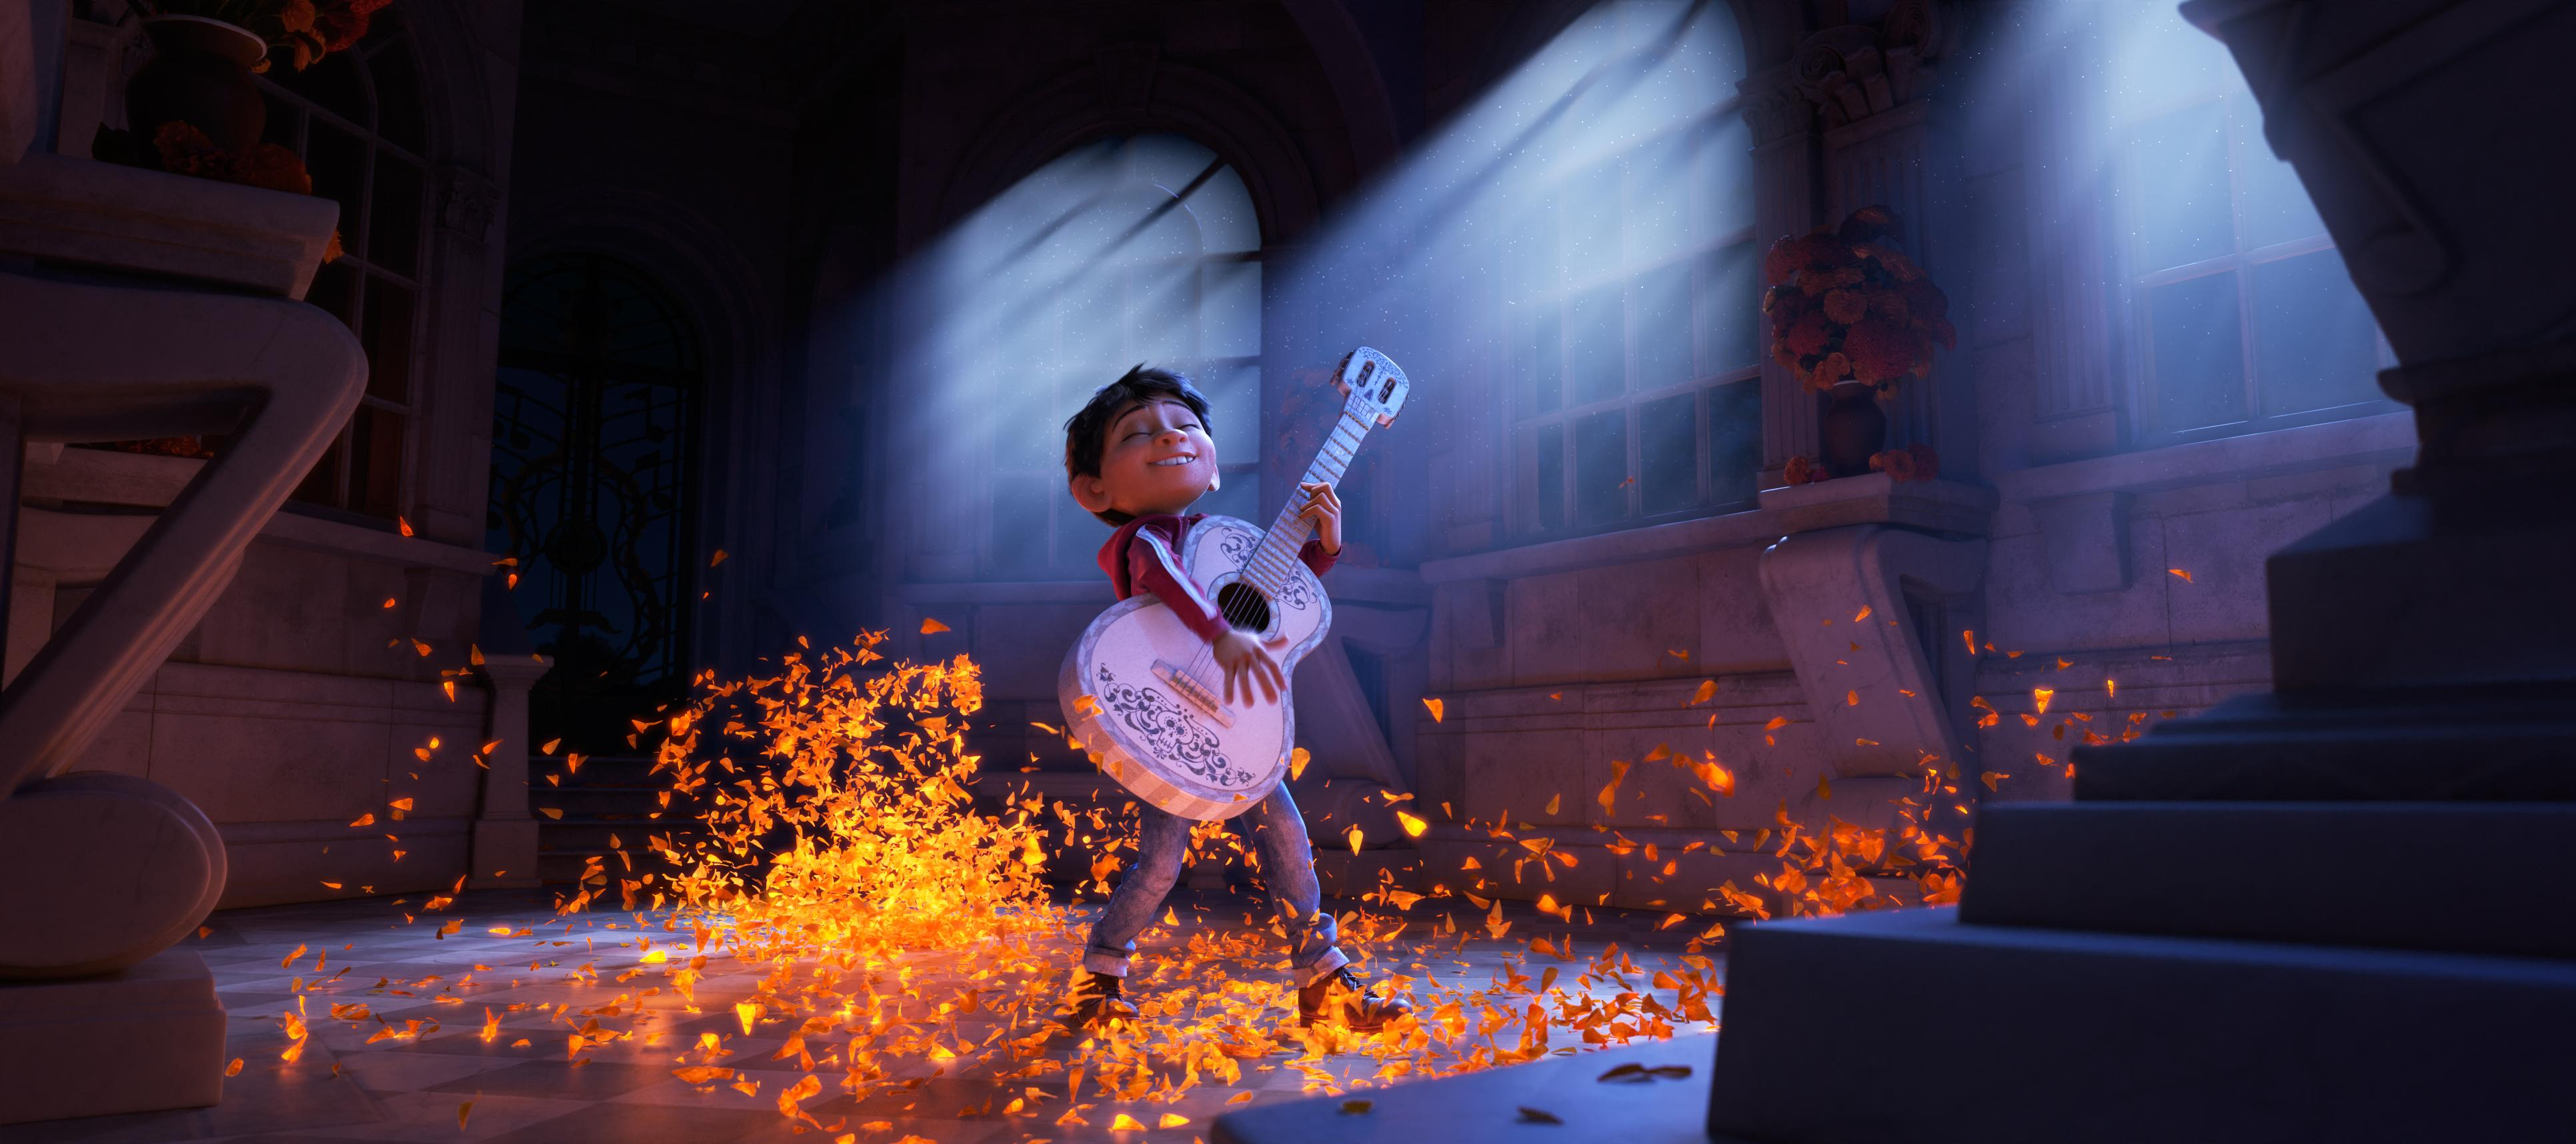 coco-pixar-movie-review